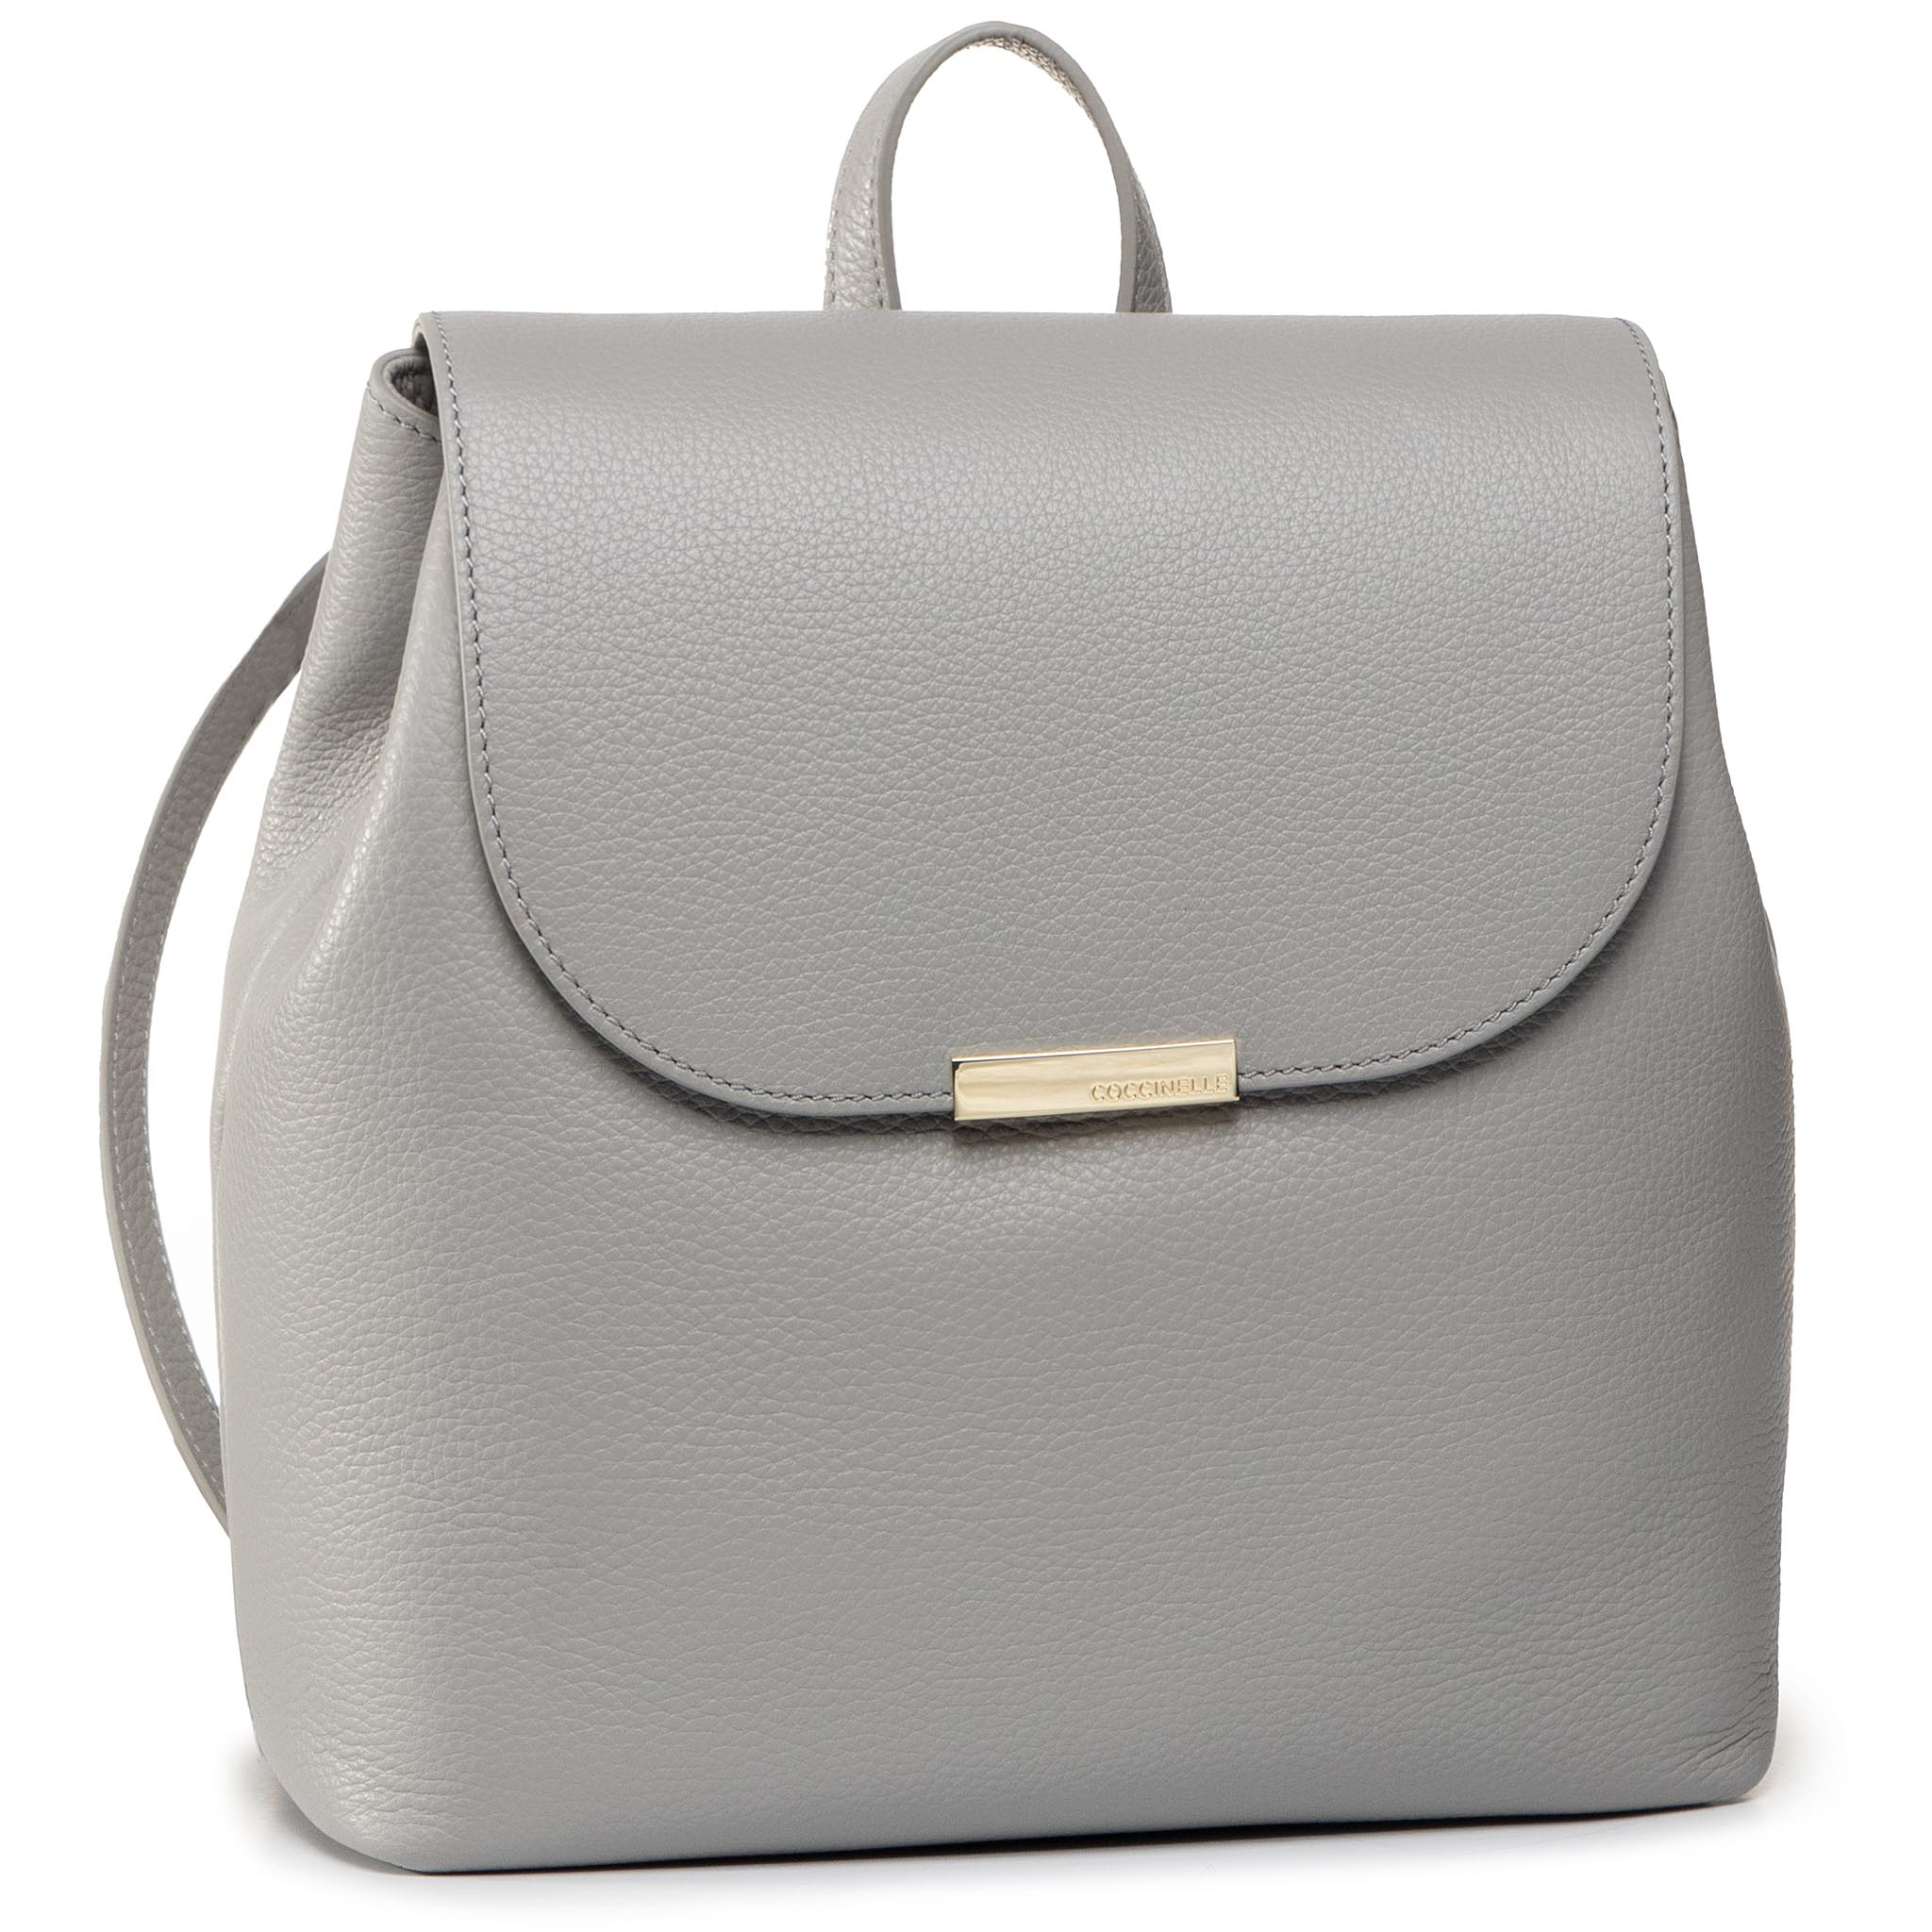 Rucsac COCCINELLE - FR0 Cher E1 FRO 14 01 01 Dolphin Y04